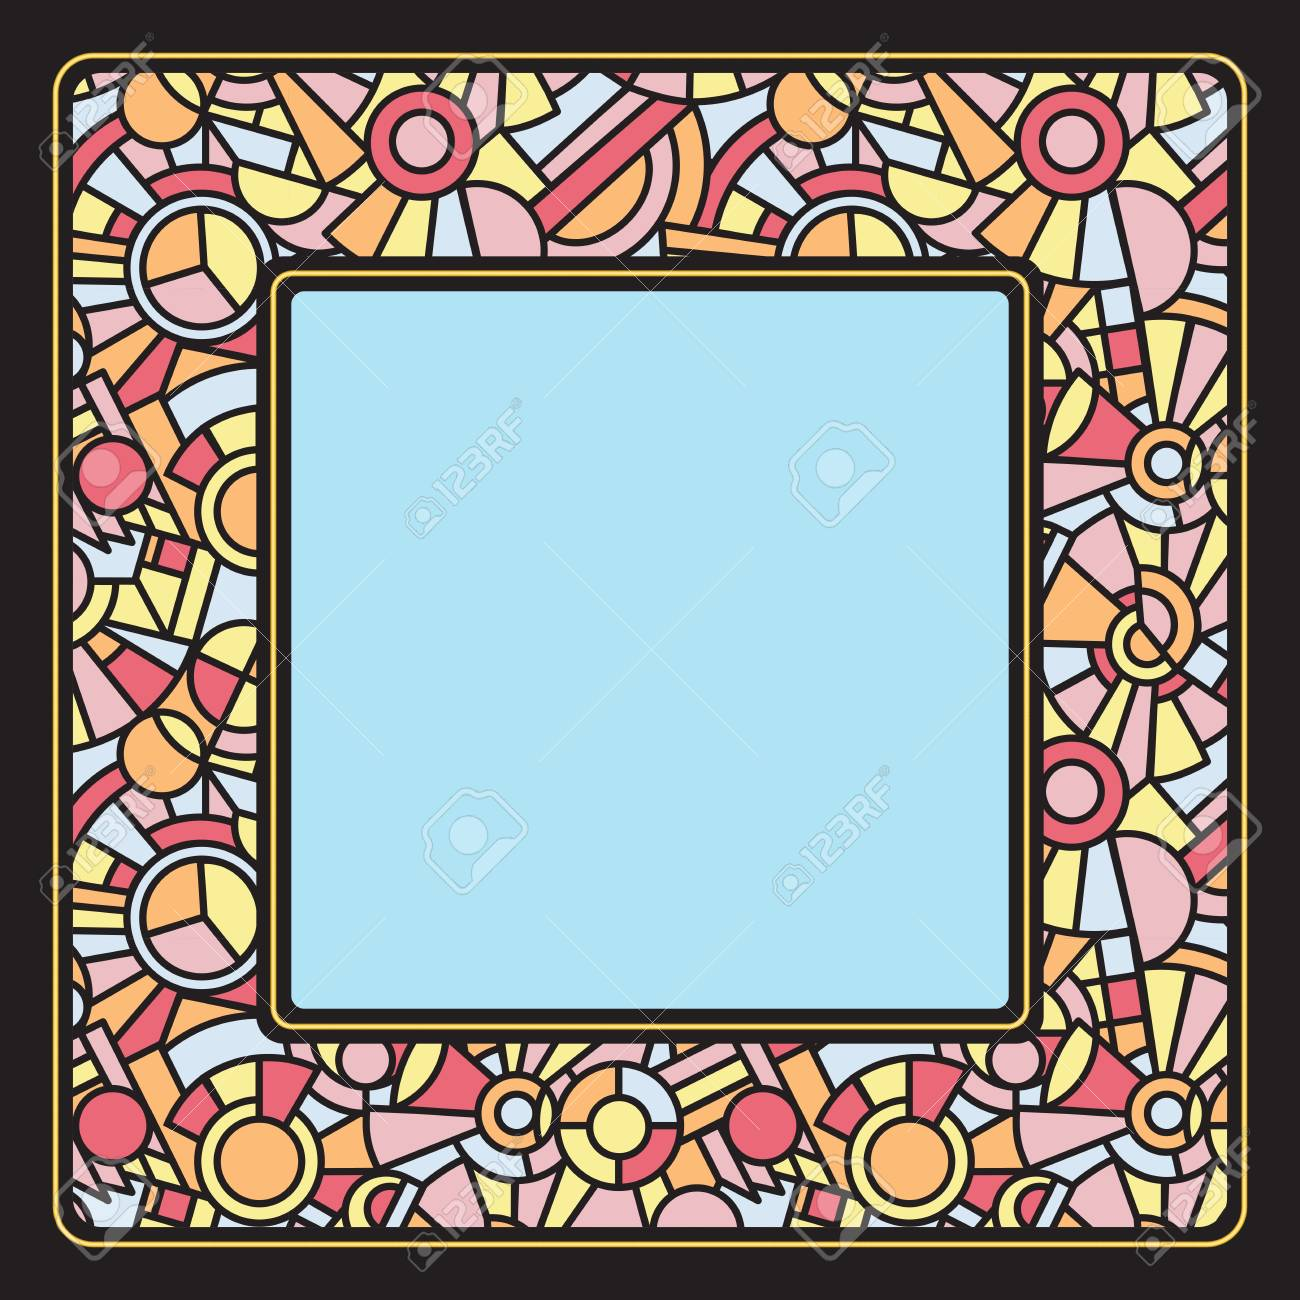 Stained Glass Frames Oval Or Oblong Picture Frames Made For Stained